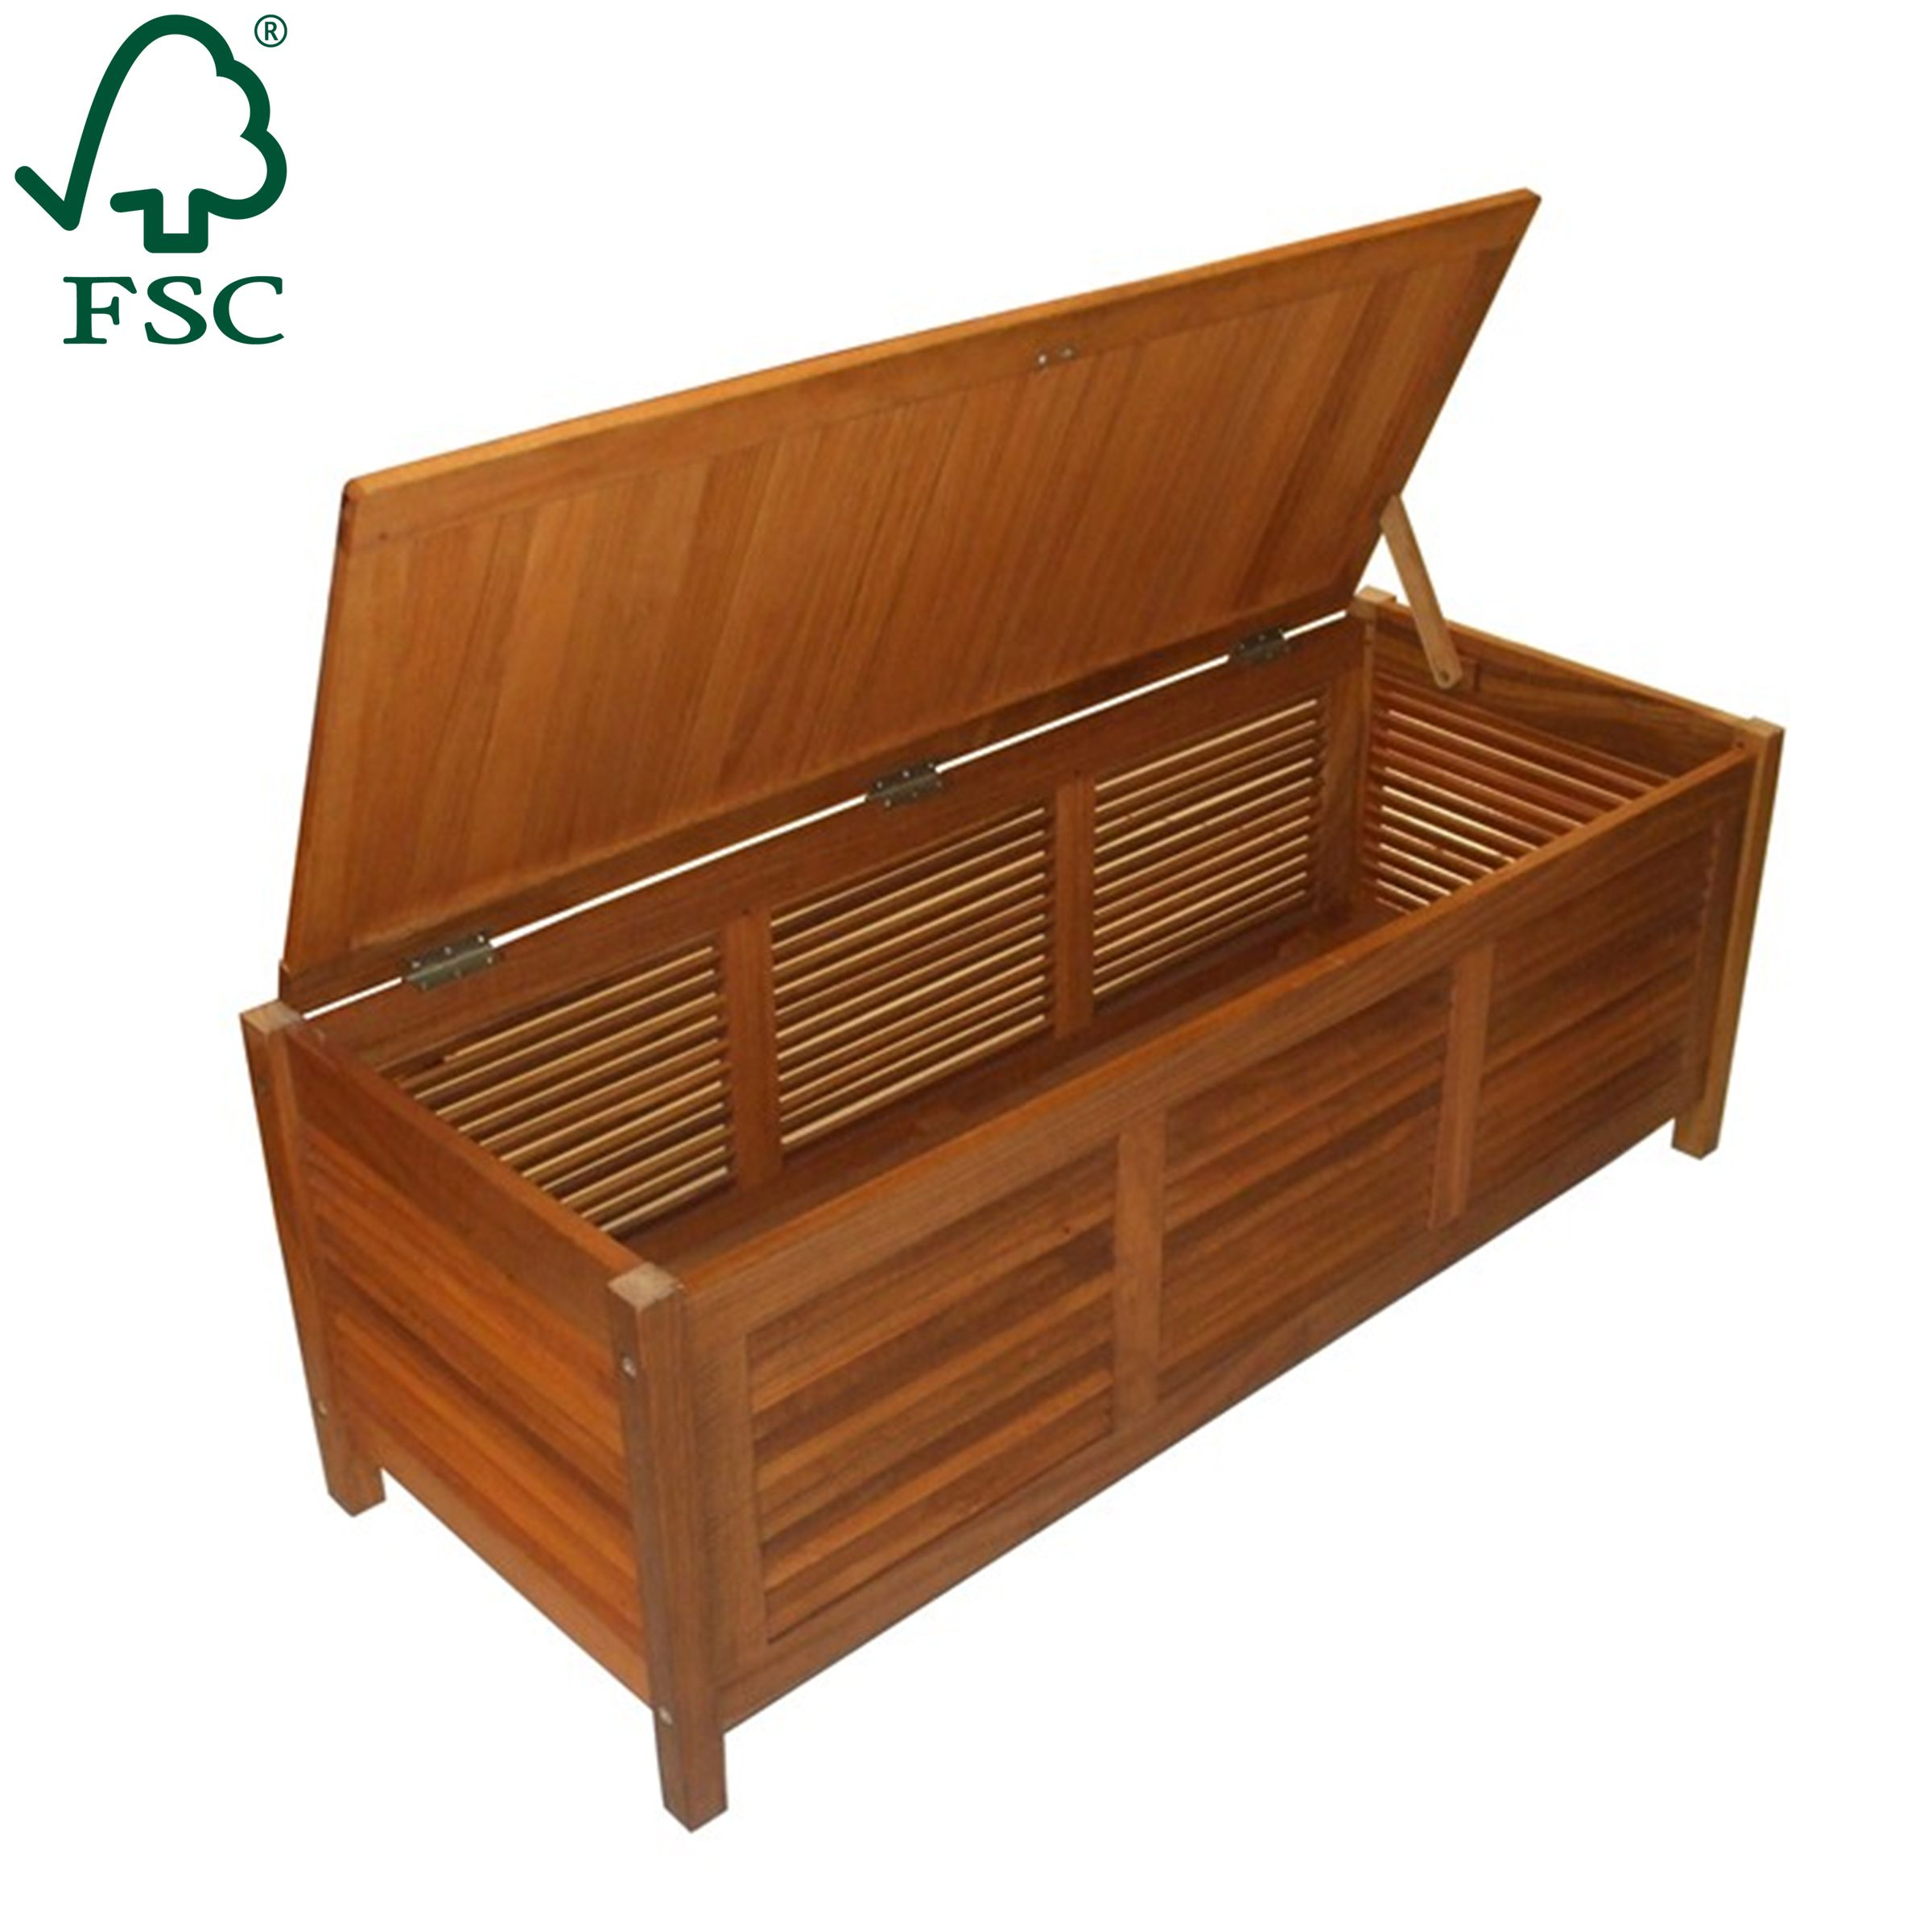 Outdoor Storage Mimosa 120X45X45Cm Timber  Bunnings Warehouse